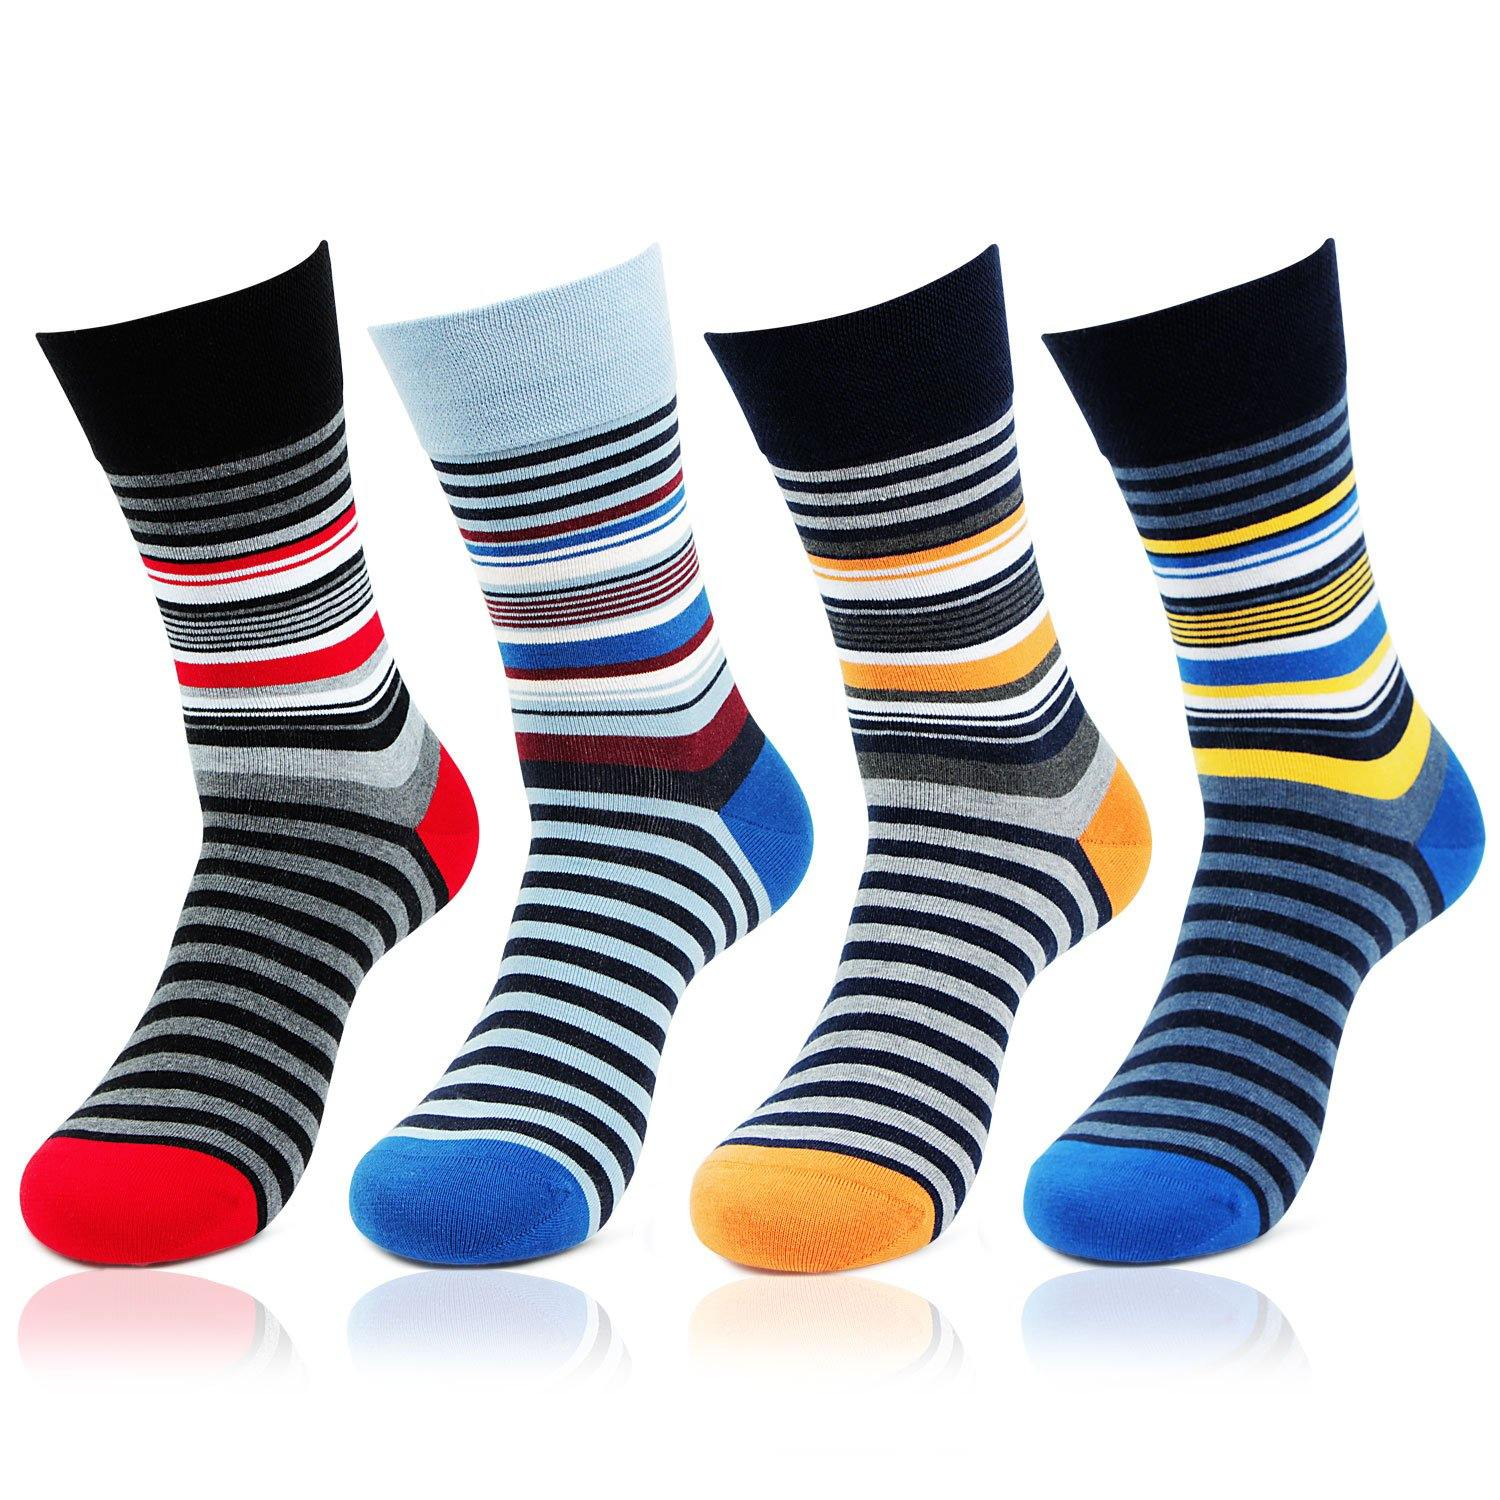 Men's Bold Designer socks - pack of 4